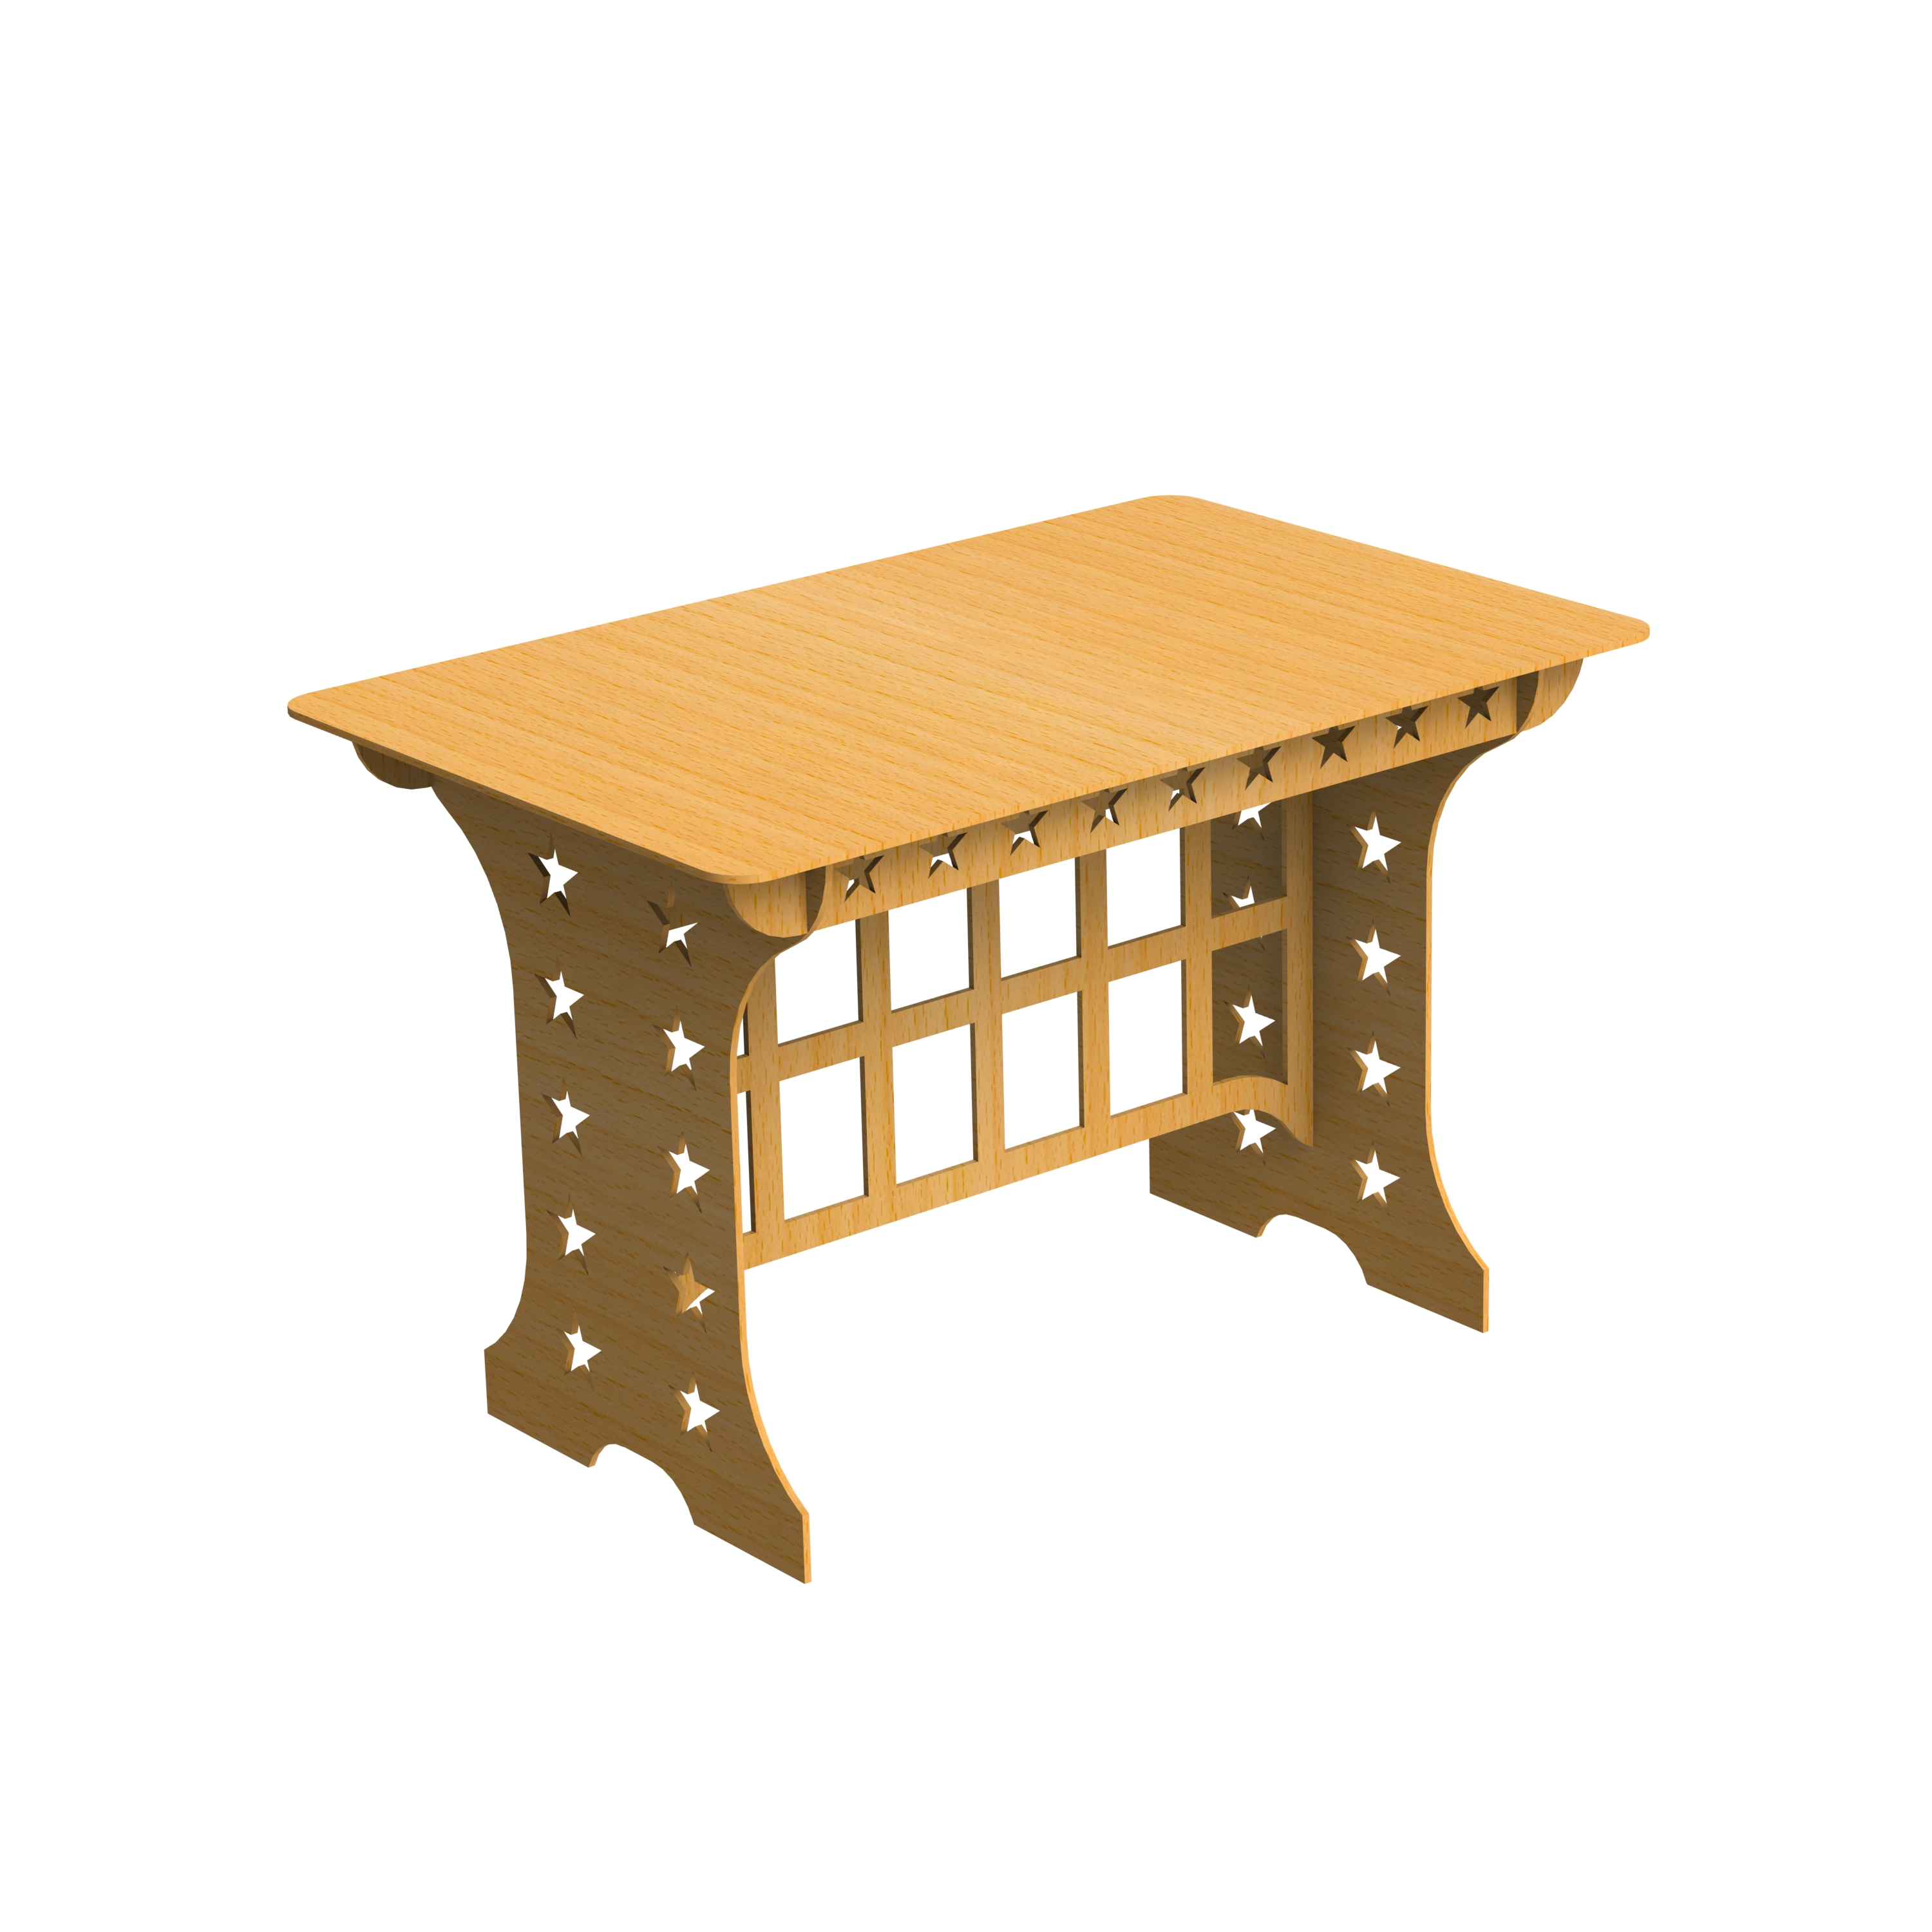 Easy Stuff Table Free DXF File